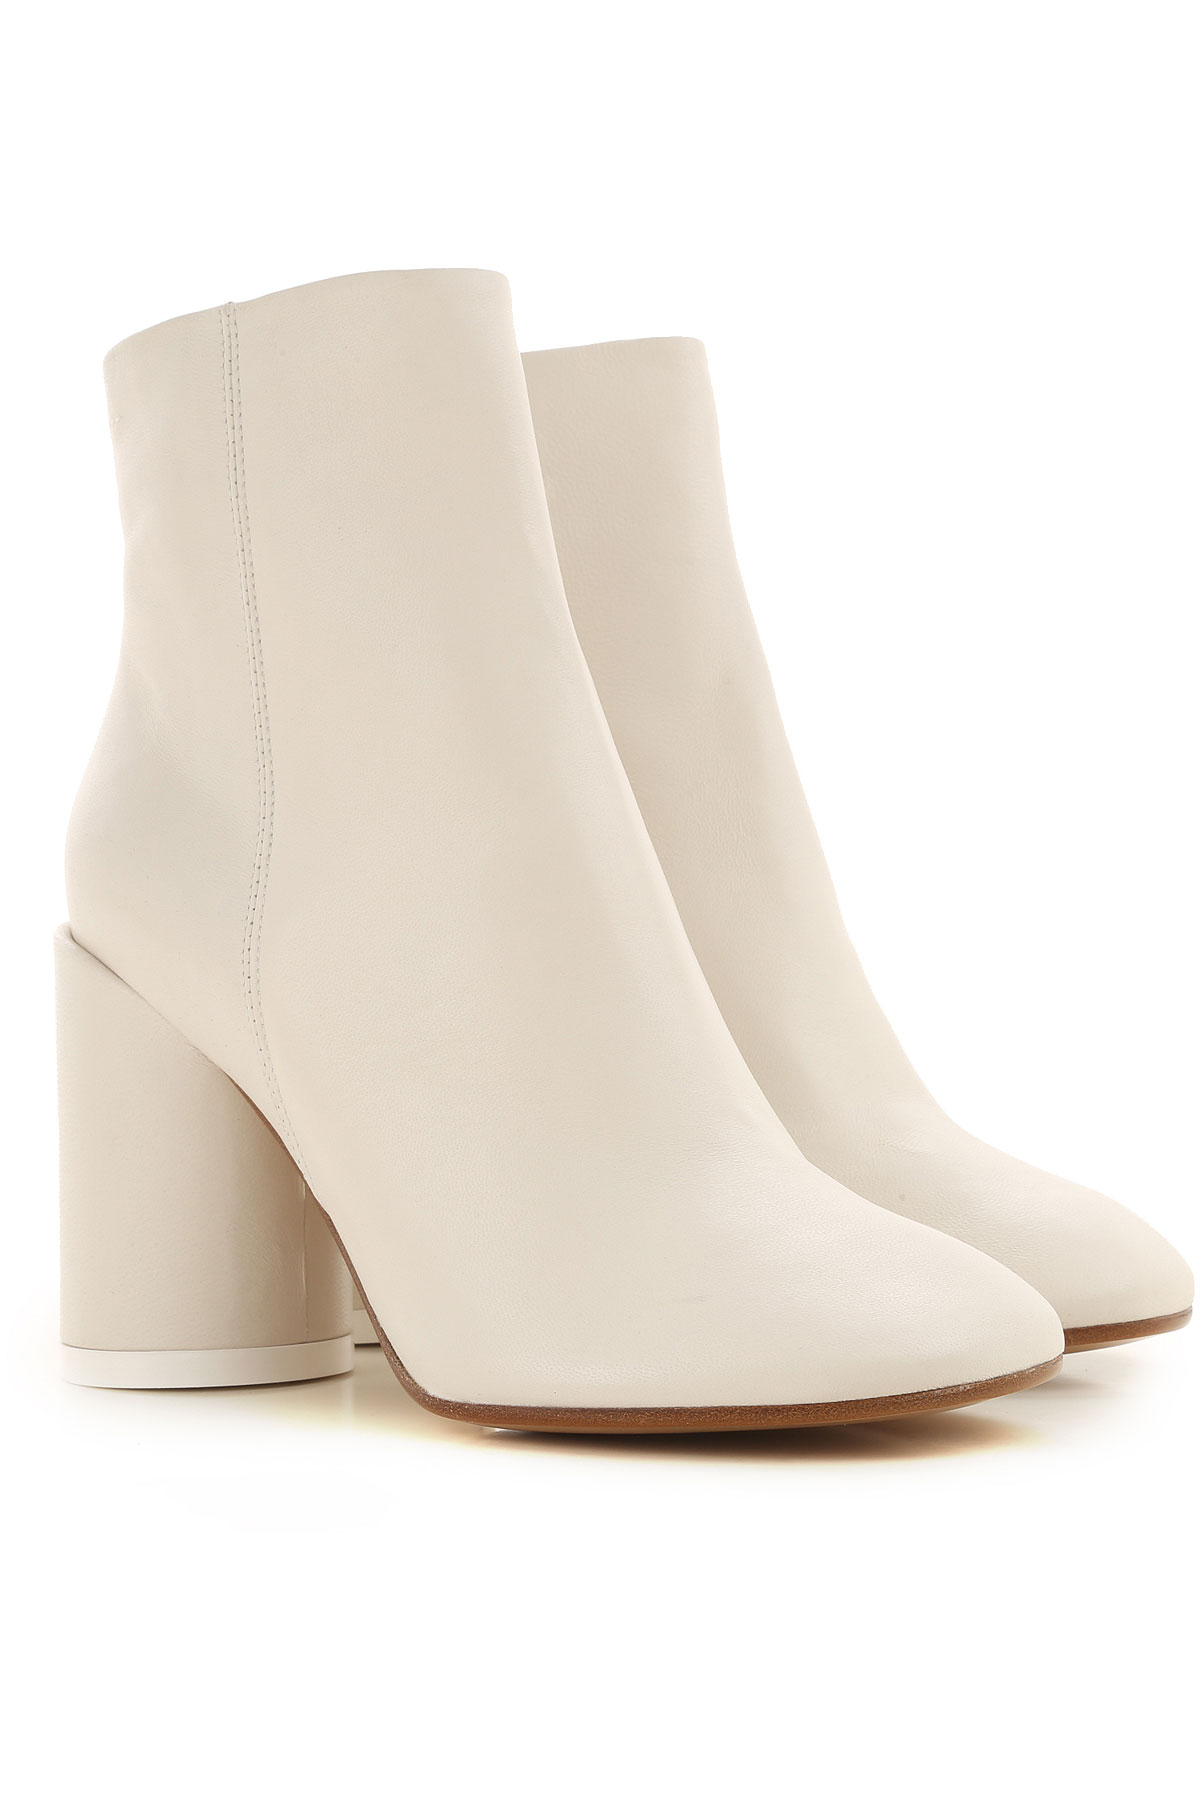 Maison Martin Margiela Boots for Women, Booties On Sale, White, Leather, 2019, 10 9